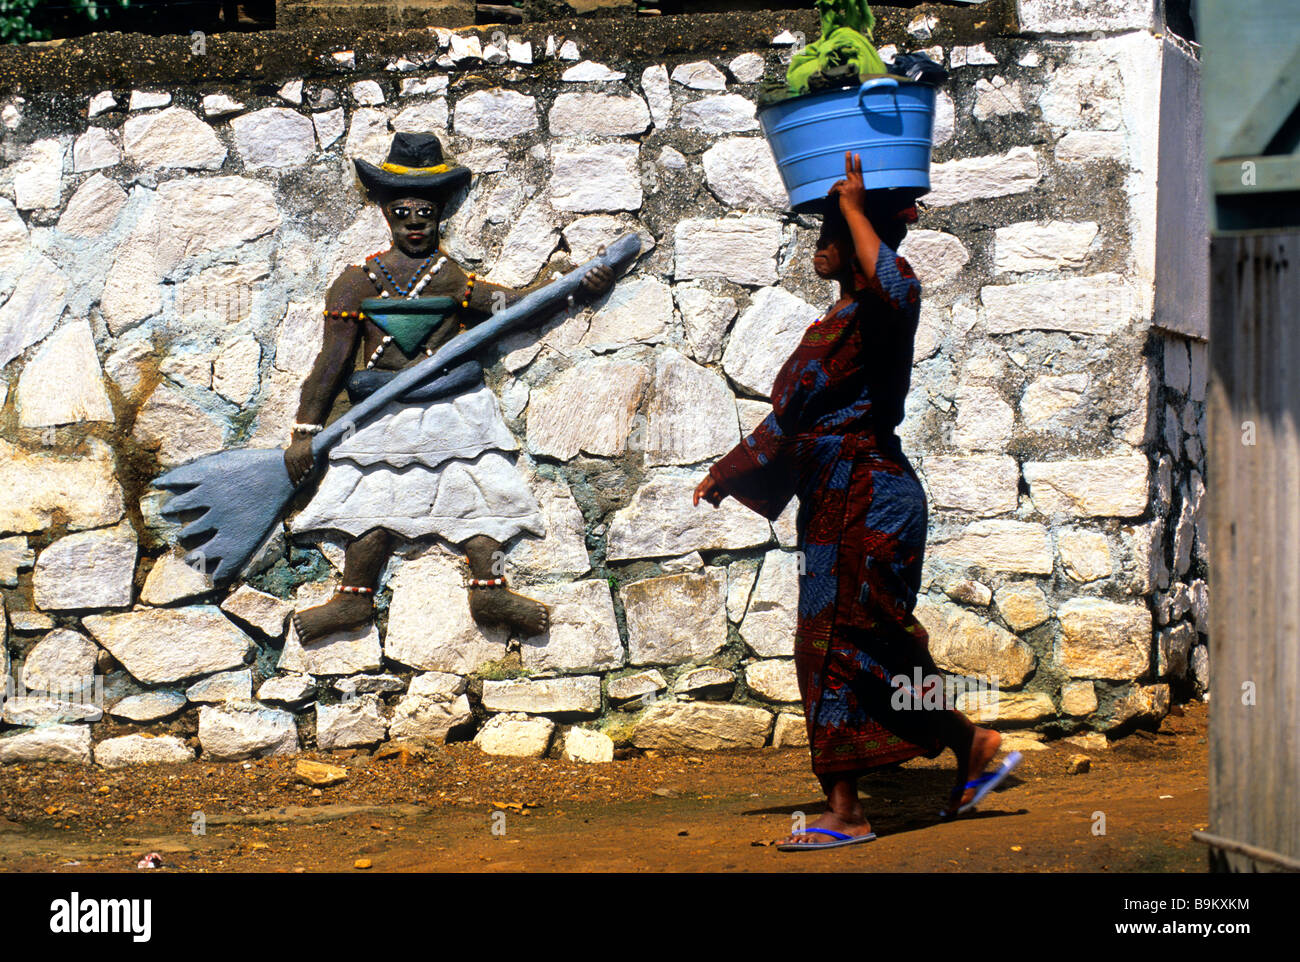 Benin, Collines County, Savalou, Sato Convent, Voodoo fetishes sculpted in the walls - Stock Image